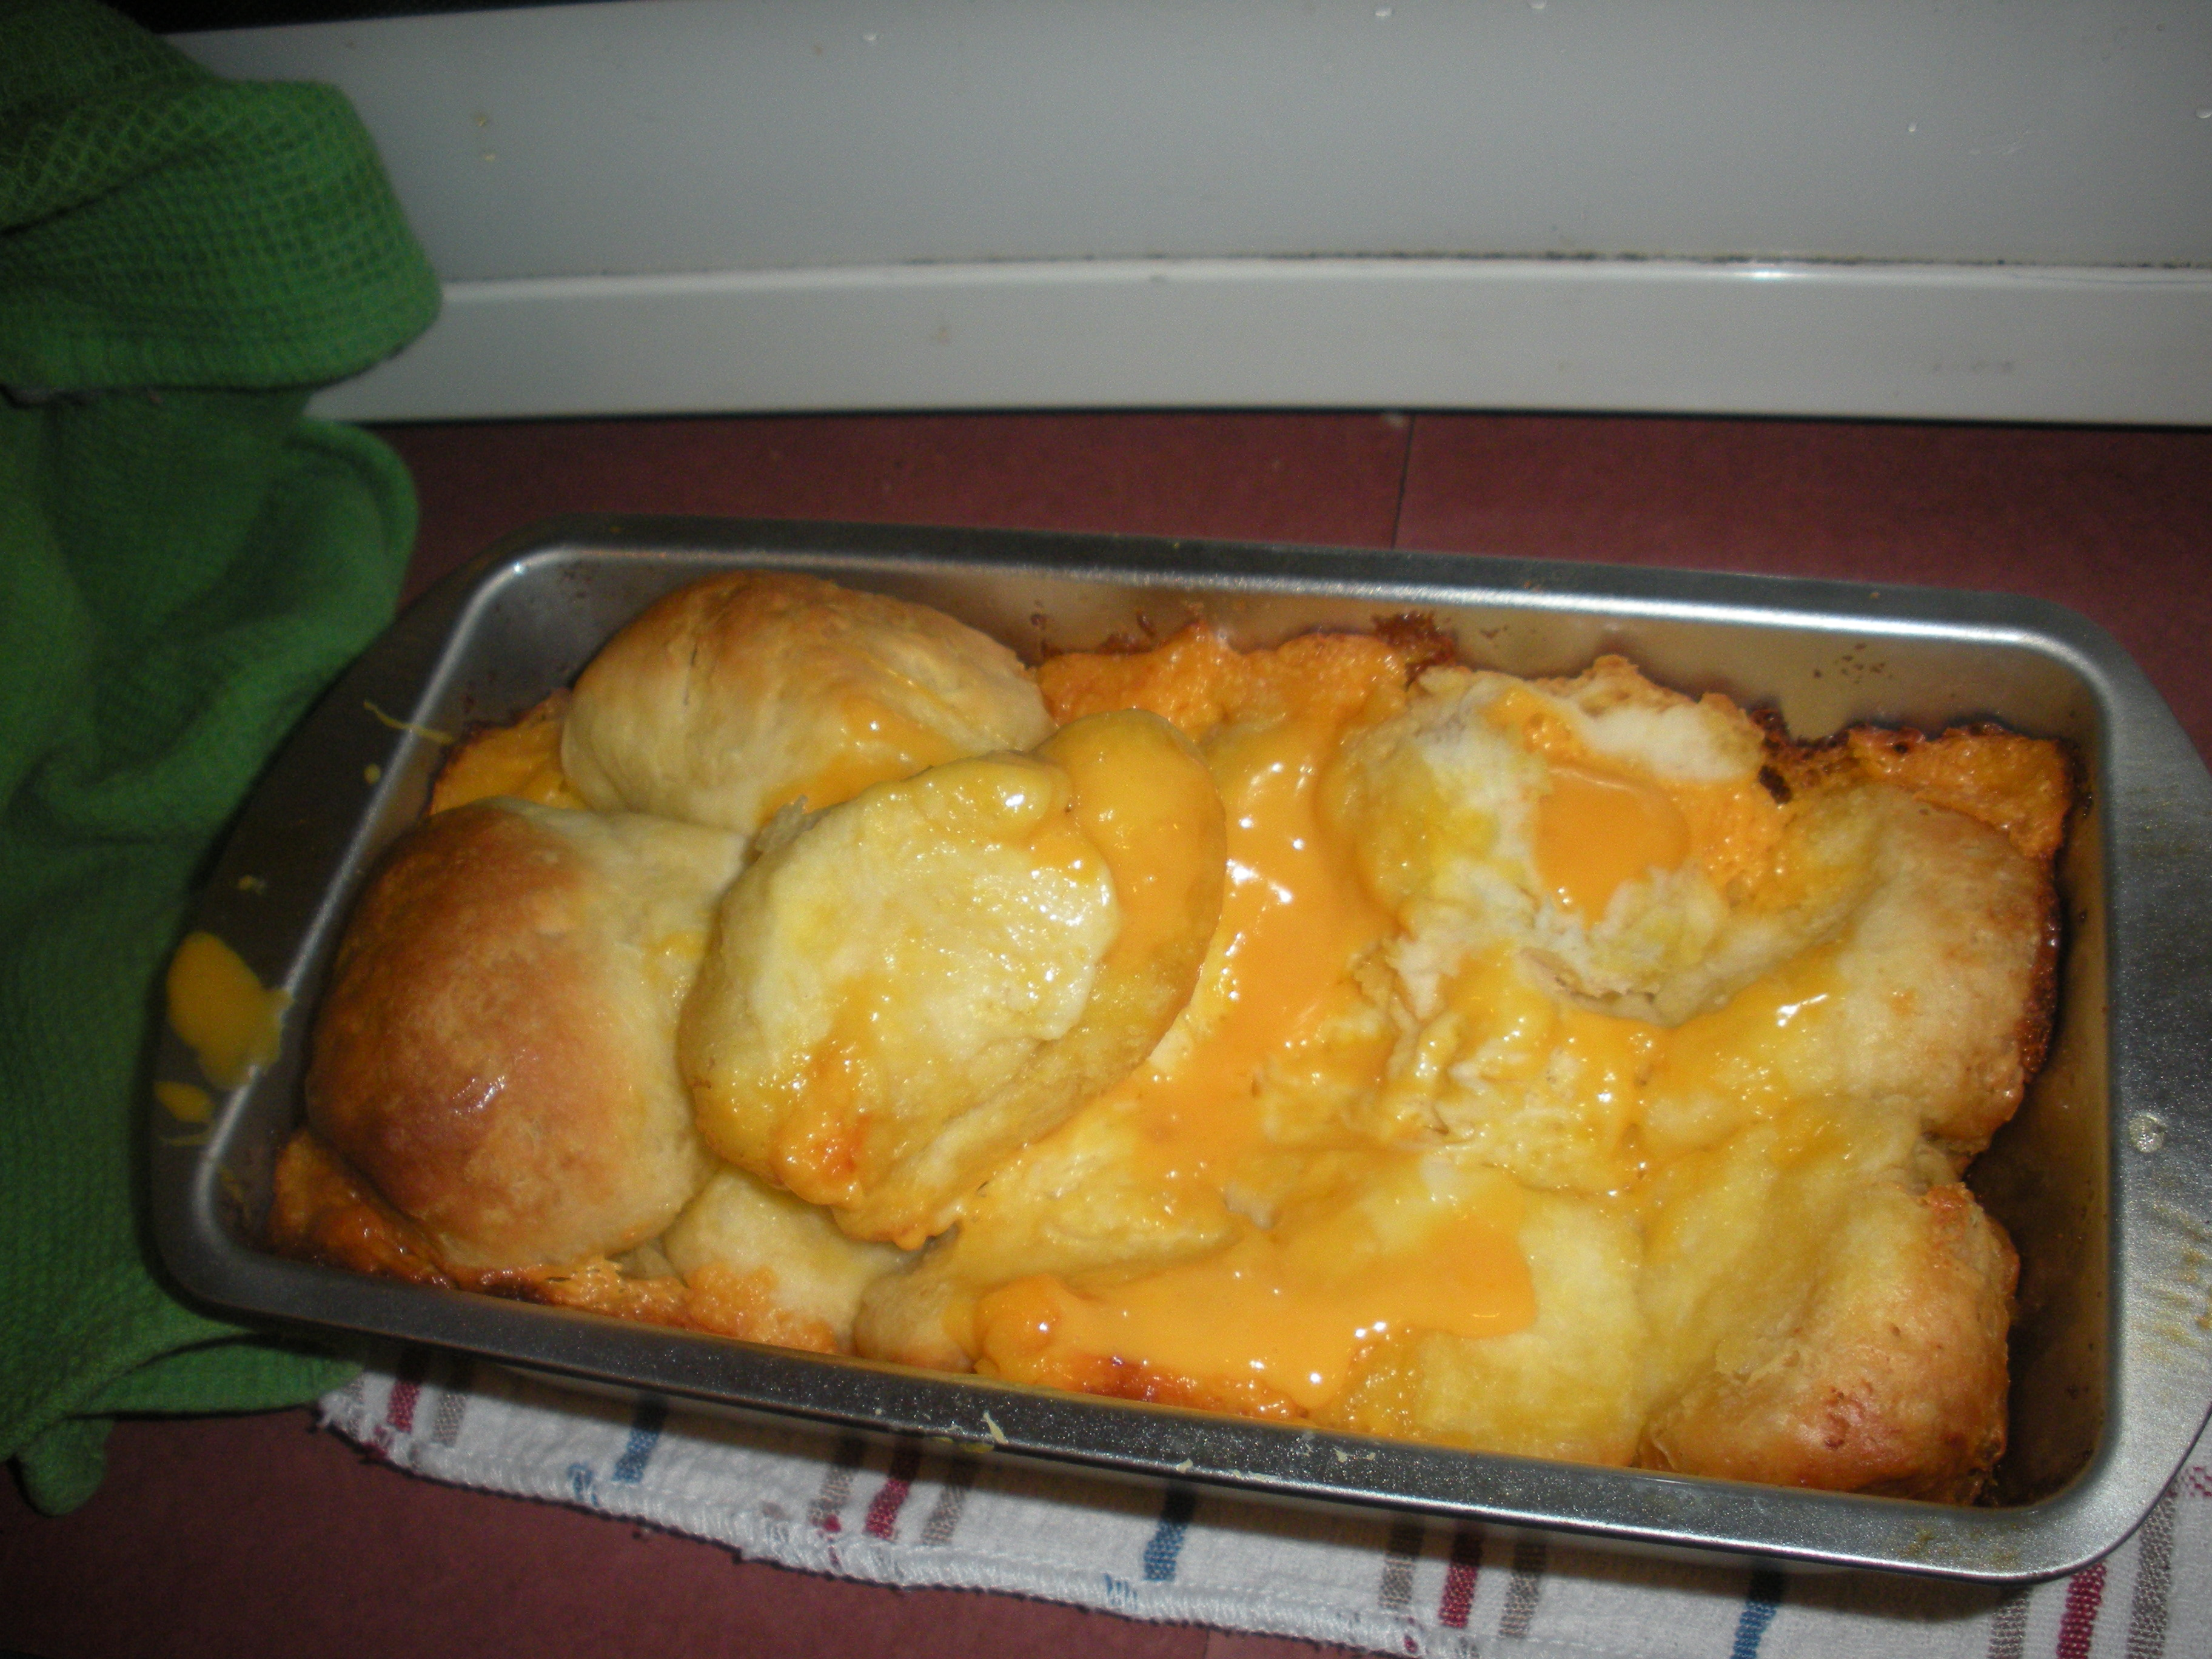 Cheesey pull bread